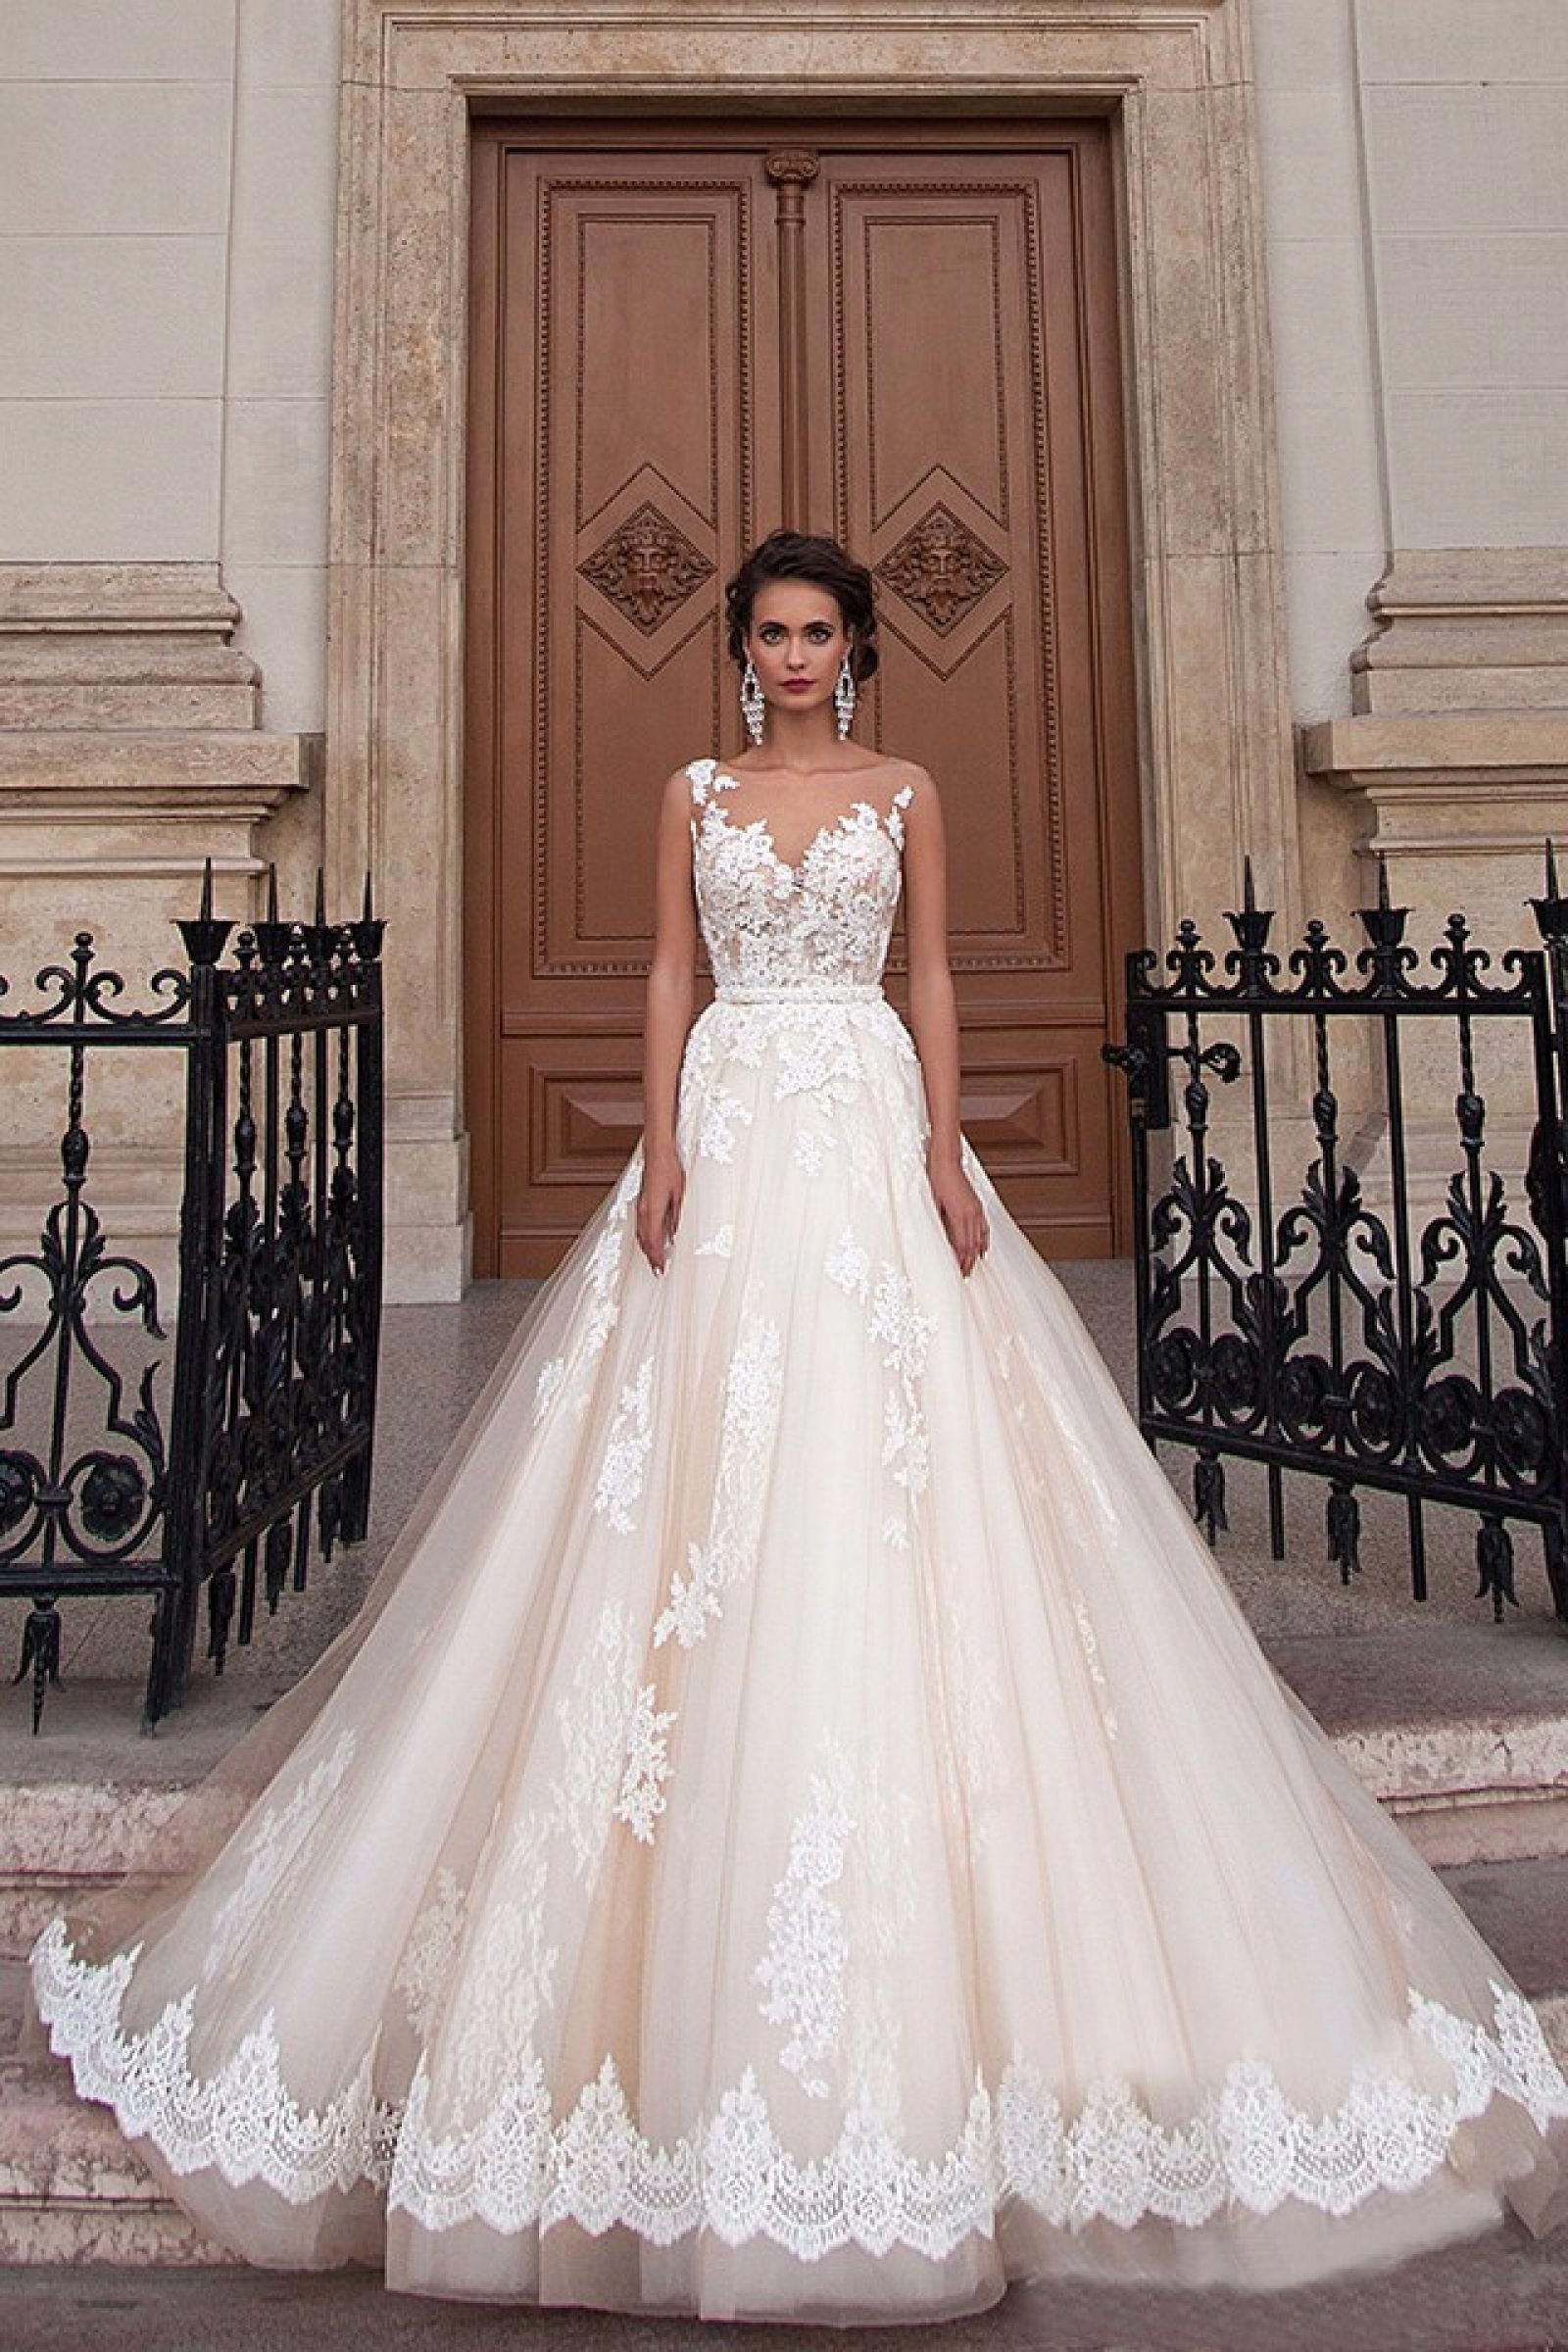 Affordable Wedding Venues In Nj Weddingsparklerscoupon Code 9372546321 Wedding Dresses 2016 Wedding Dresses Wedding Dresses Lace